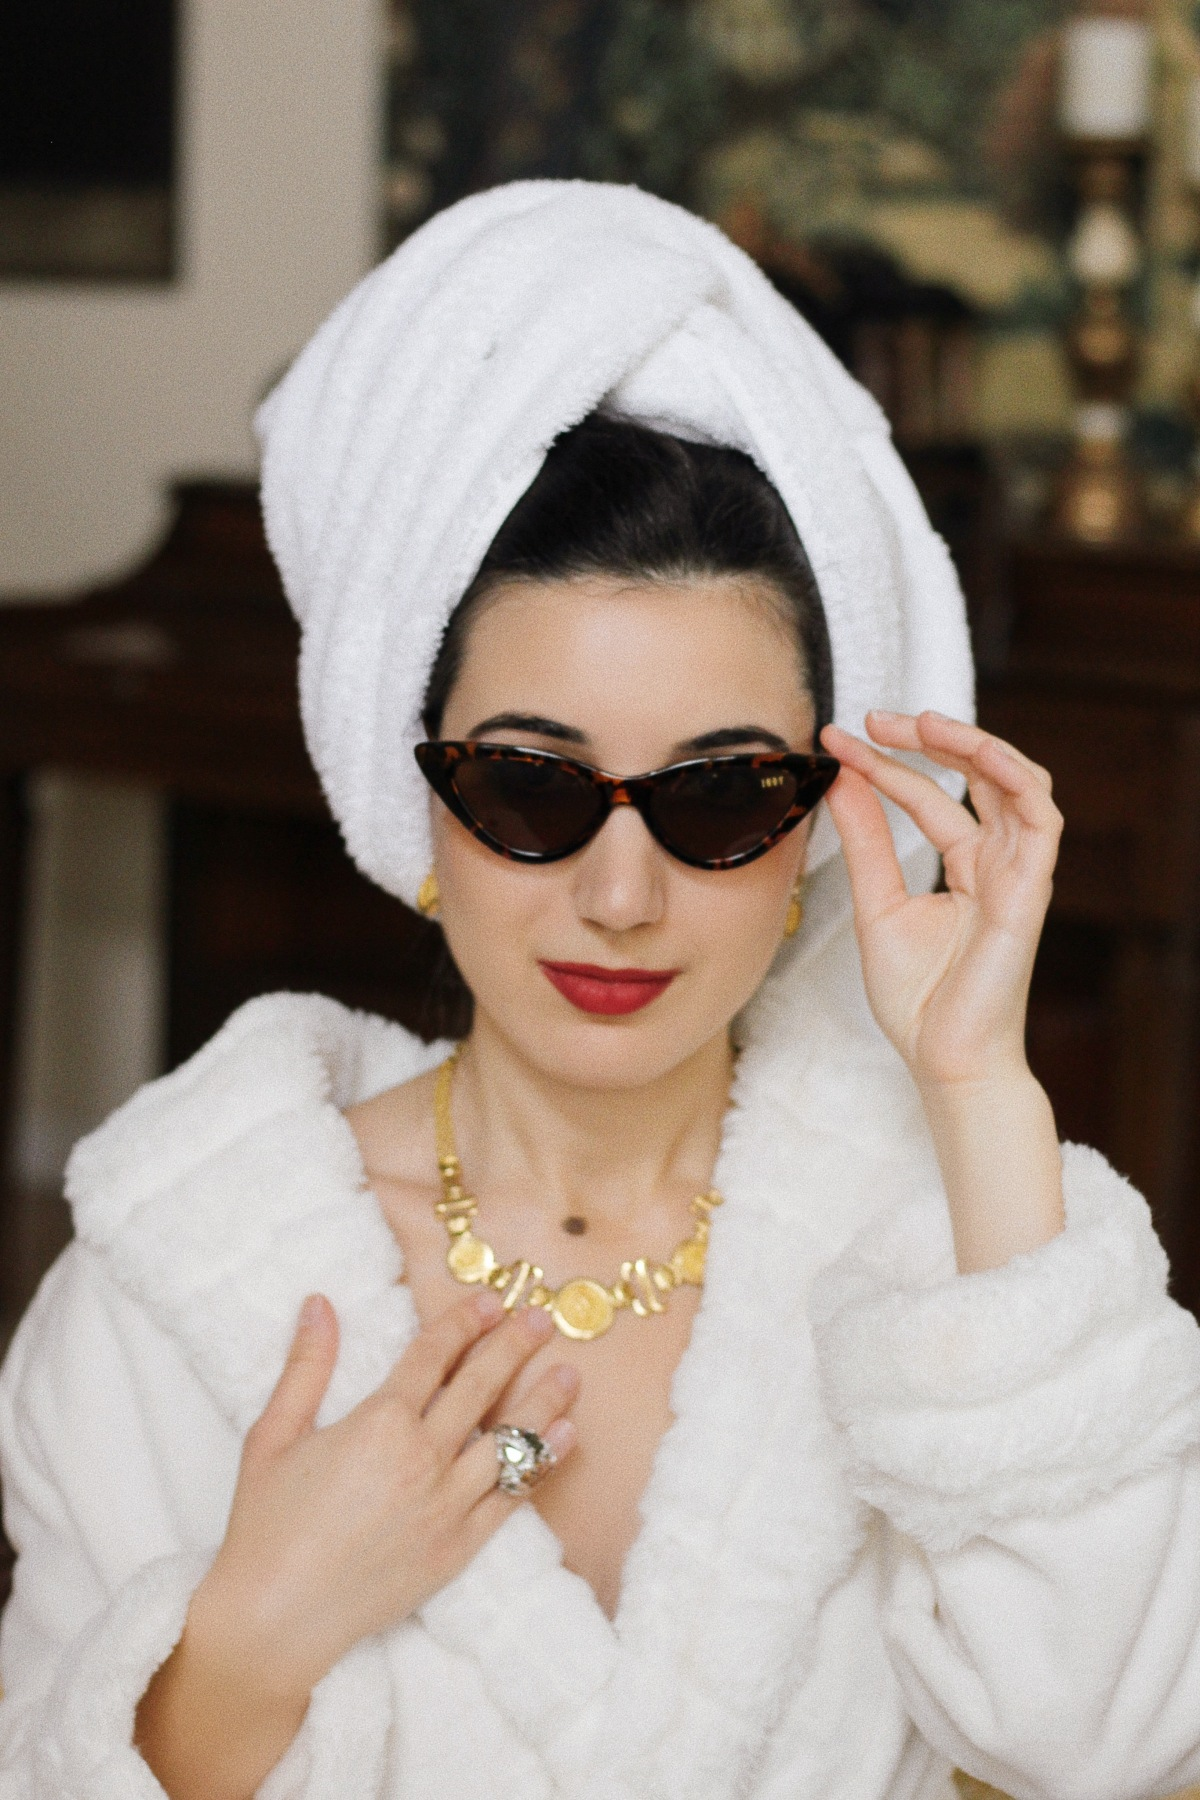 social distancing, binge watch, Netflix and Chill, COVID19, coronavirus, spa outfit, vintage, Sophia Loren, beauty, health and wellness, fashion documentaries, white robe, red lipstick, gold jewelry, Vogue, vintage fashion photos, outfit of the day, high fashion, outfit of the day, look of the day, style diary, indoor activities, R&R, rest and relation, pampering